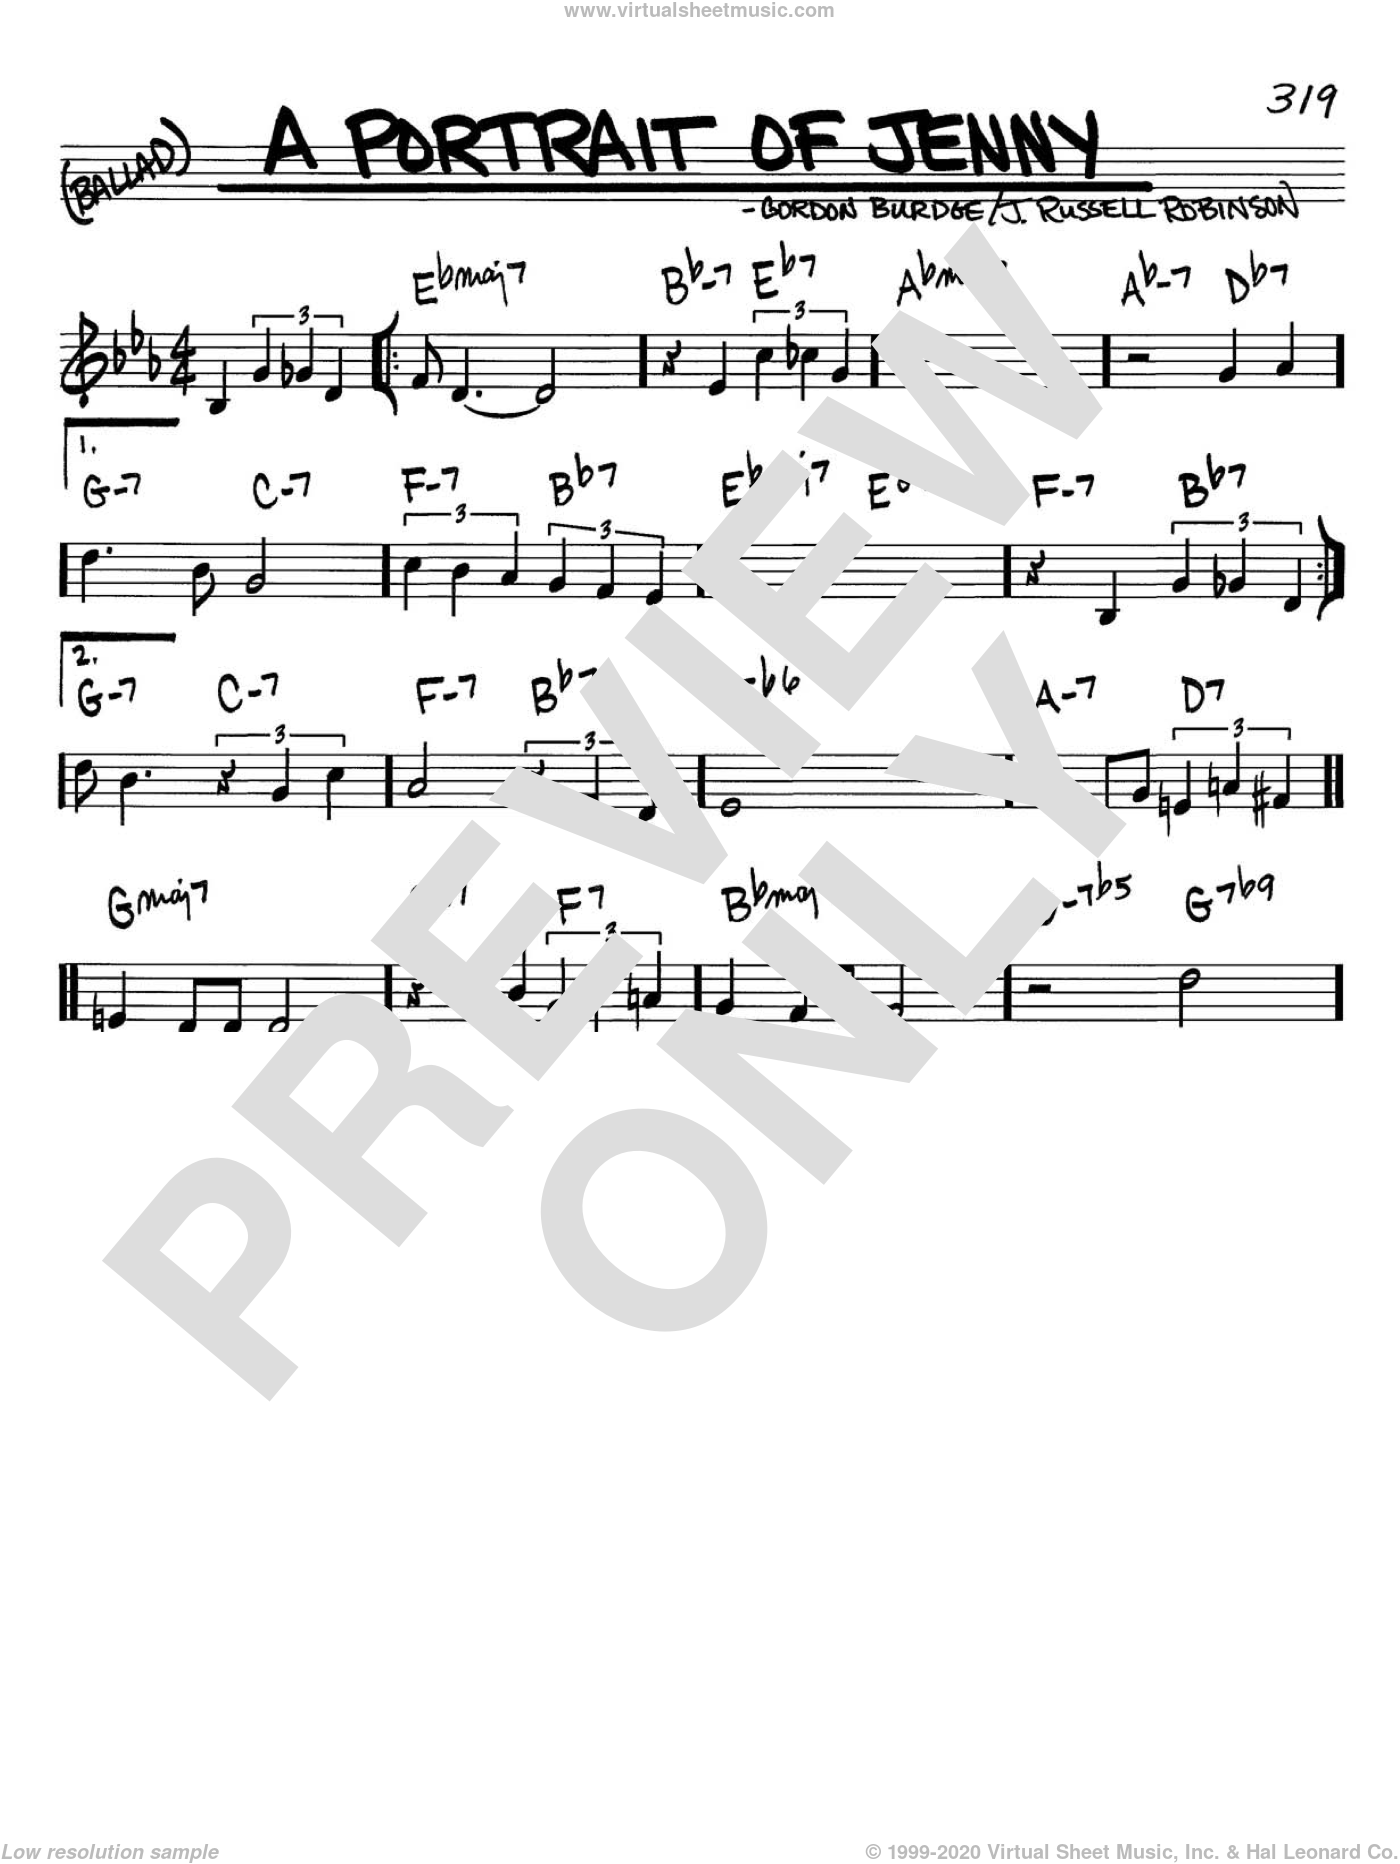 A Portrait of Jenny sheet music for voice and other instruments (in C) by Gordon Burdge and Russell Robinson, intermediate. Score Image Preview.